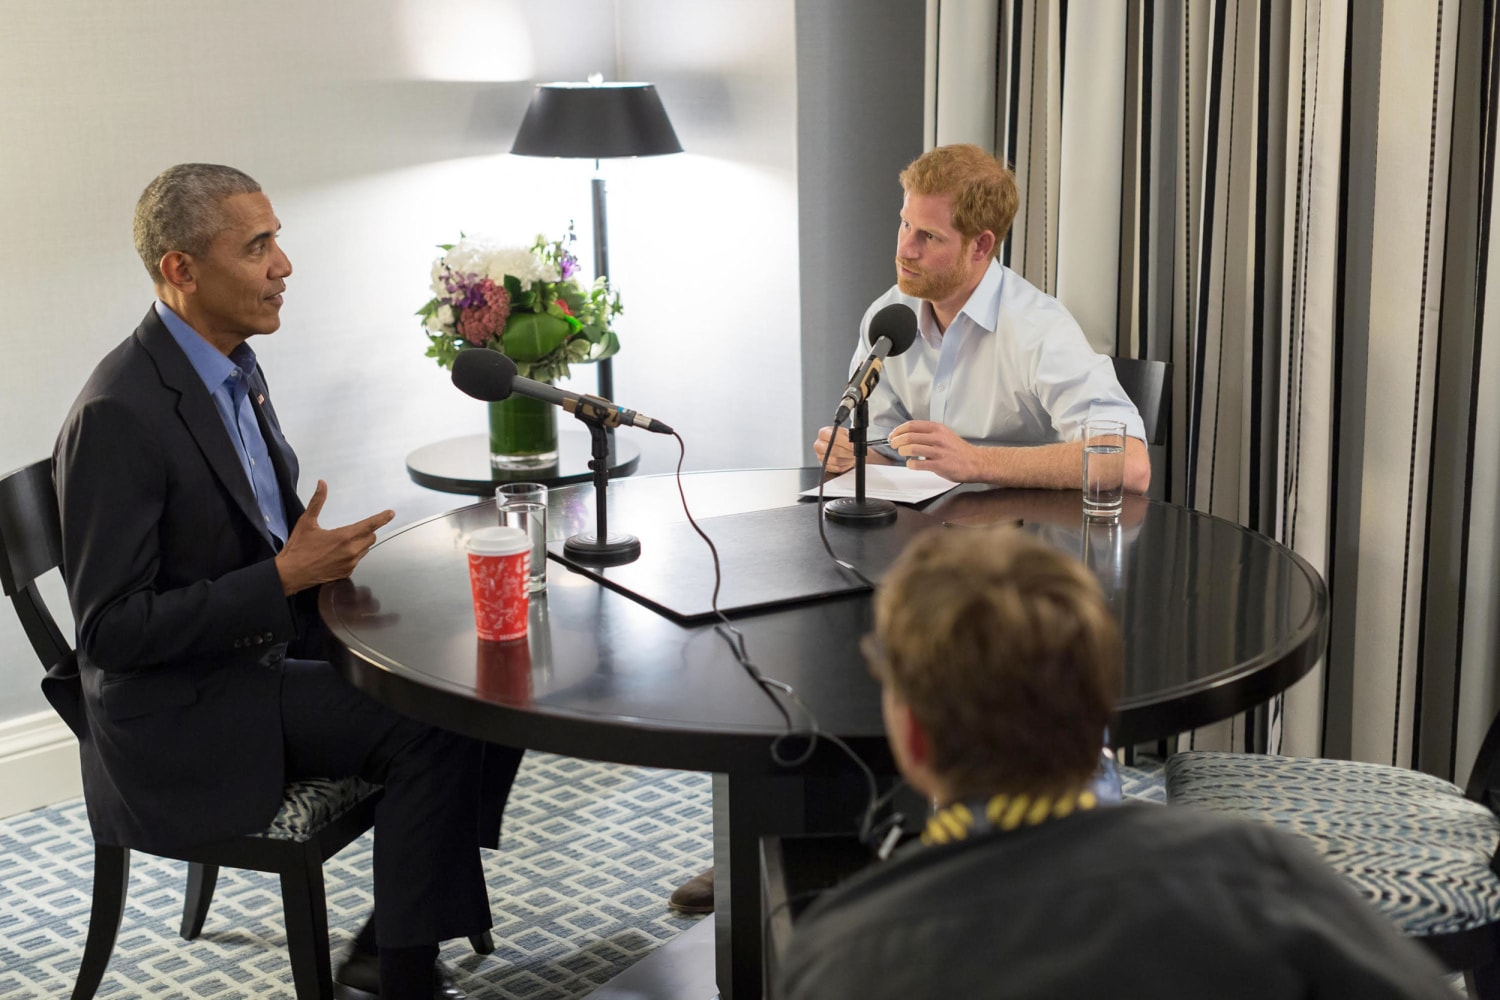 Prince Harry interviews Obama for the BBC